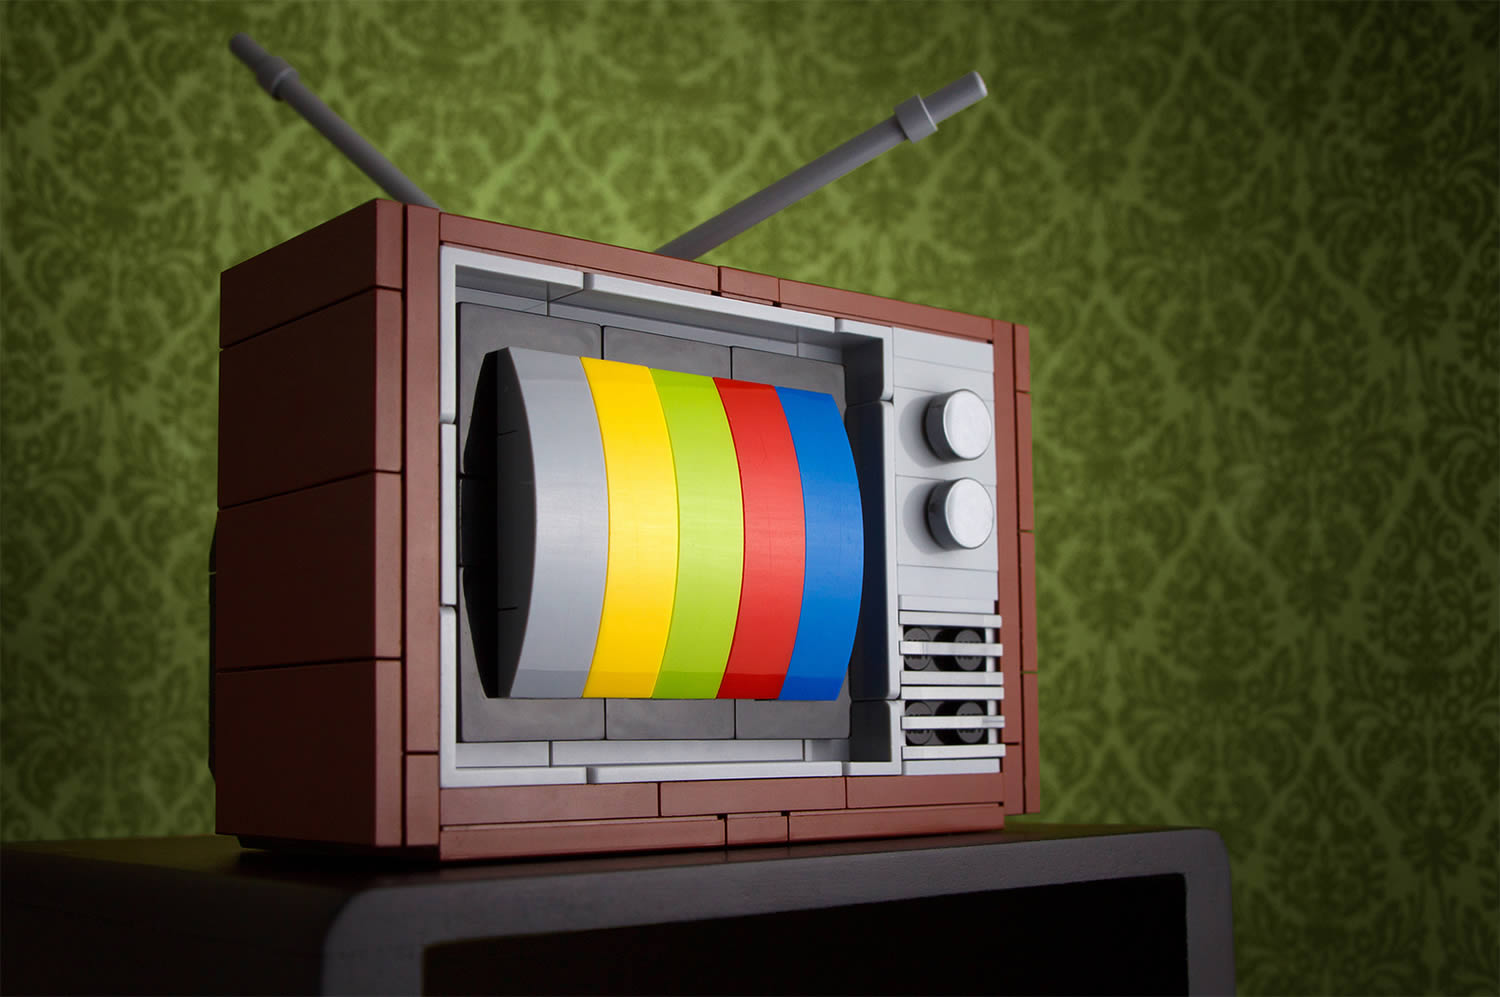 57 channels and nothing on,lego art, a television by Chris McVeigh